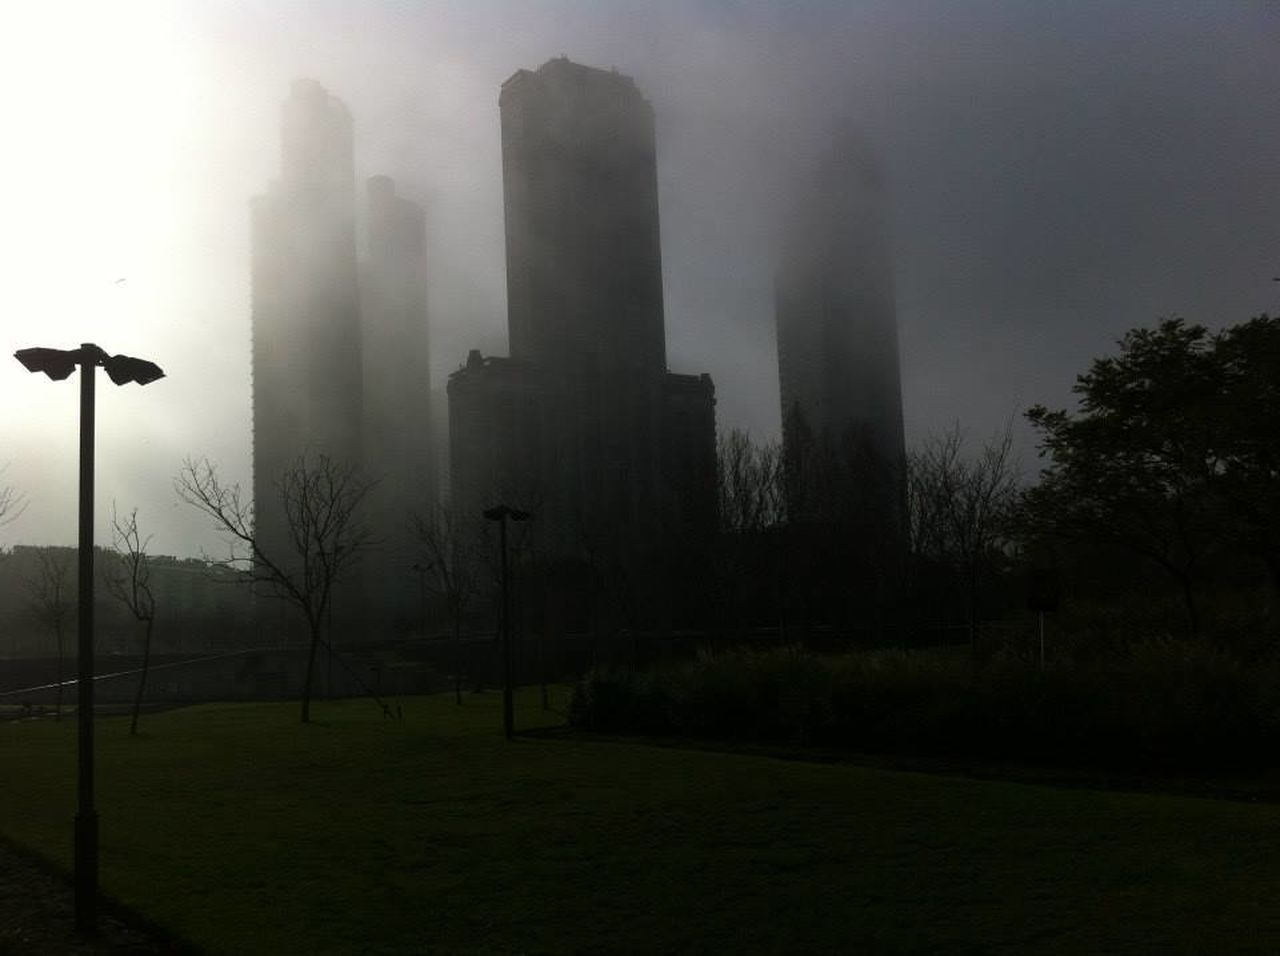 VIEW OF LAMP POST IN FOGGY WEATHER